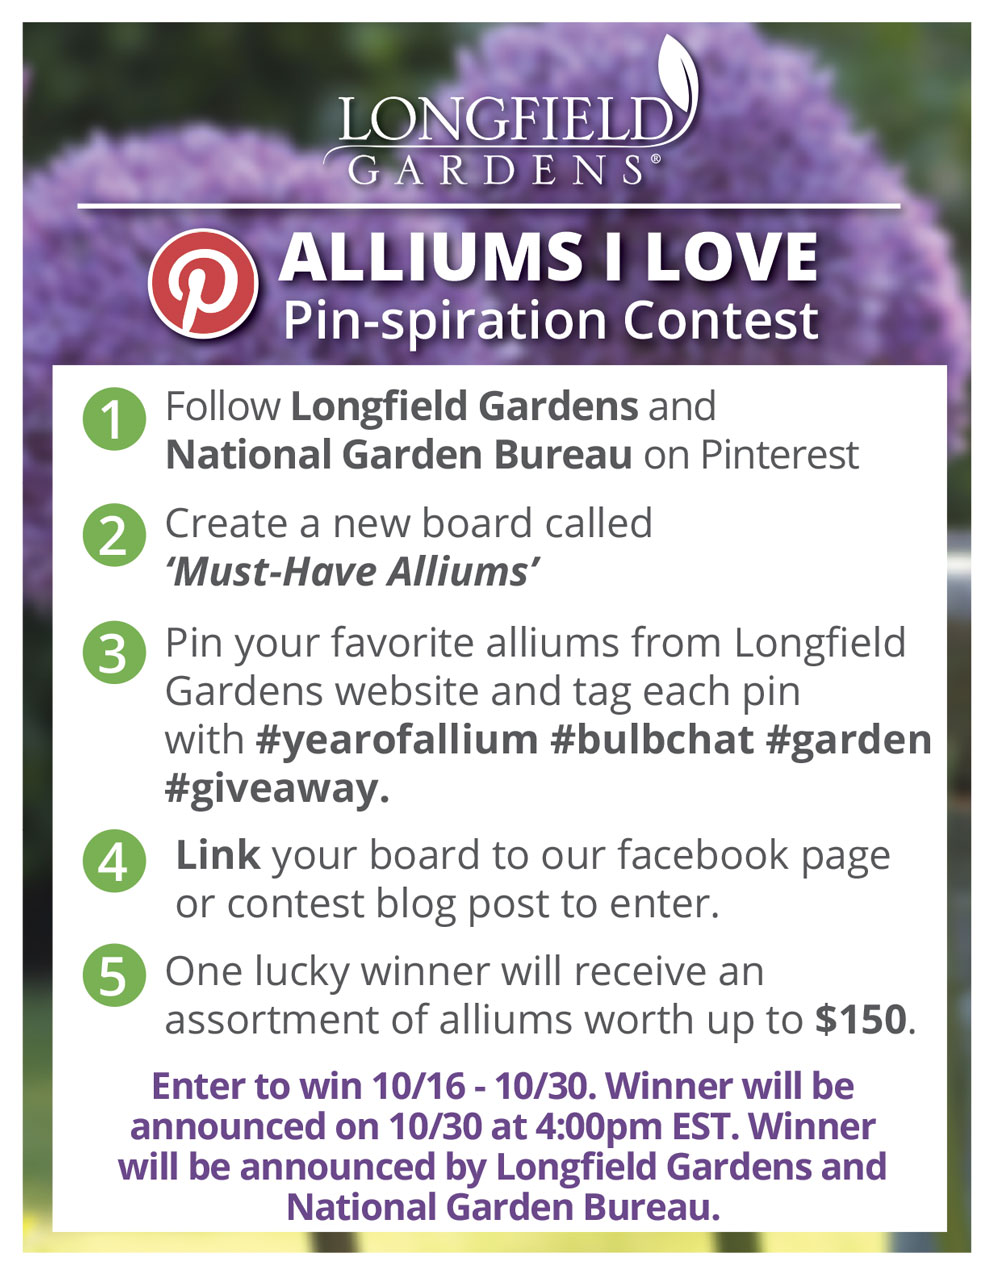 Alliums Pinterest Contest